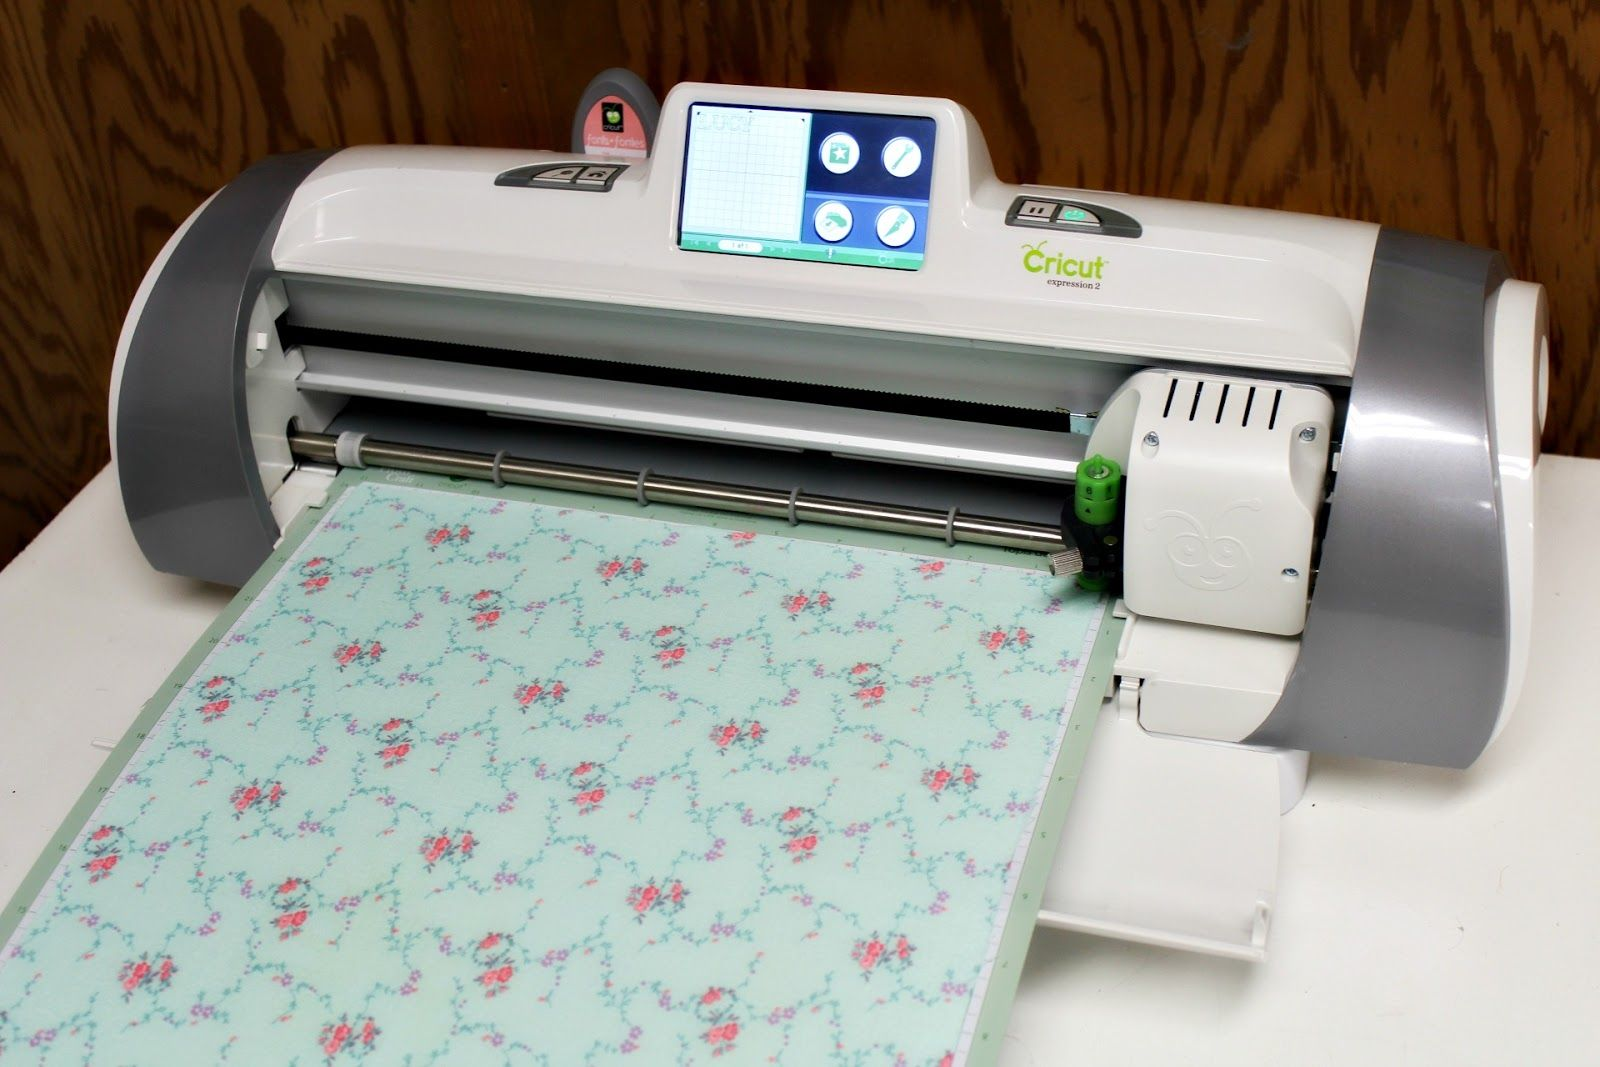 Iron on fabric stazon ink onsie project tutorial for The cricut craft machine